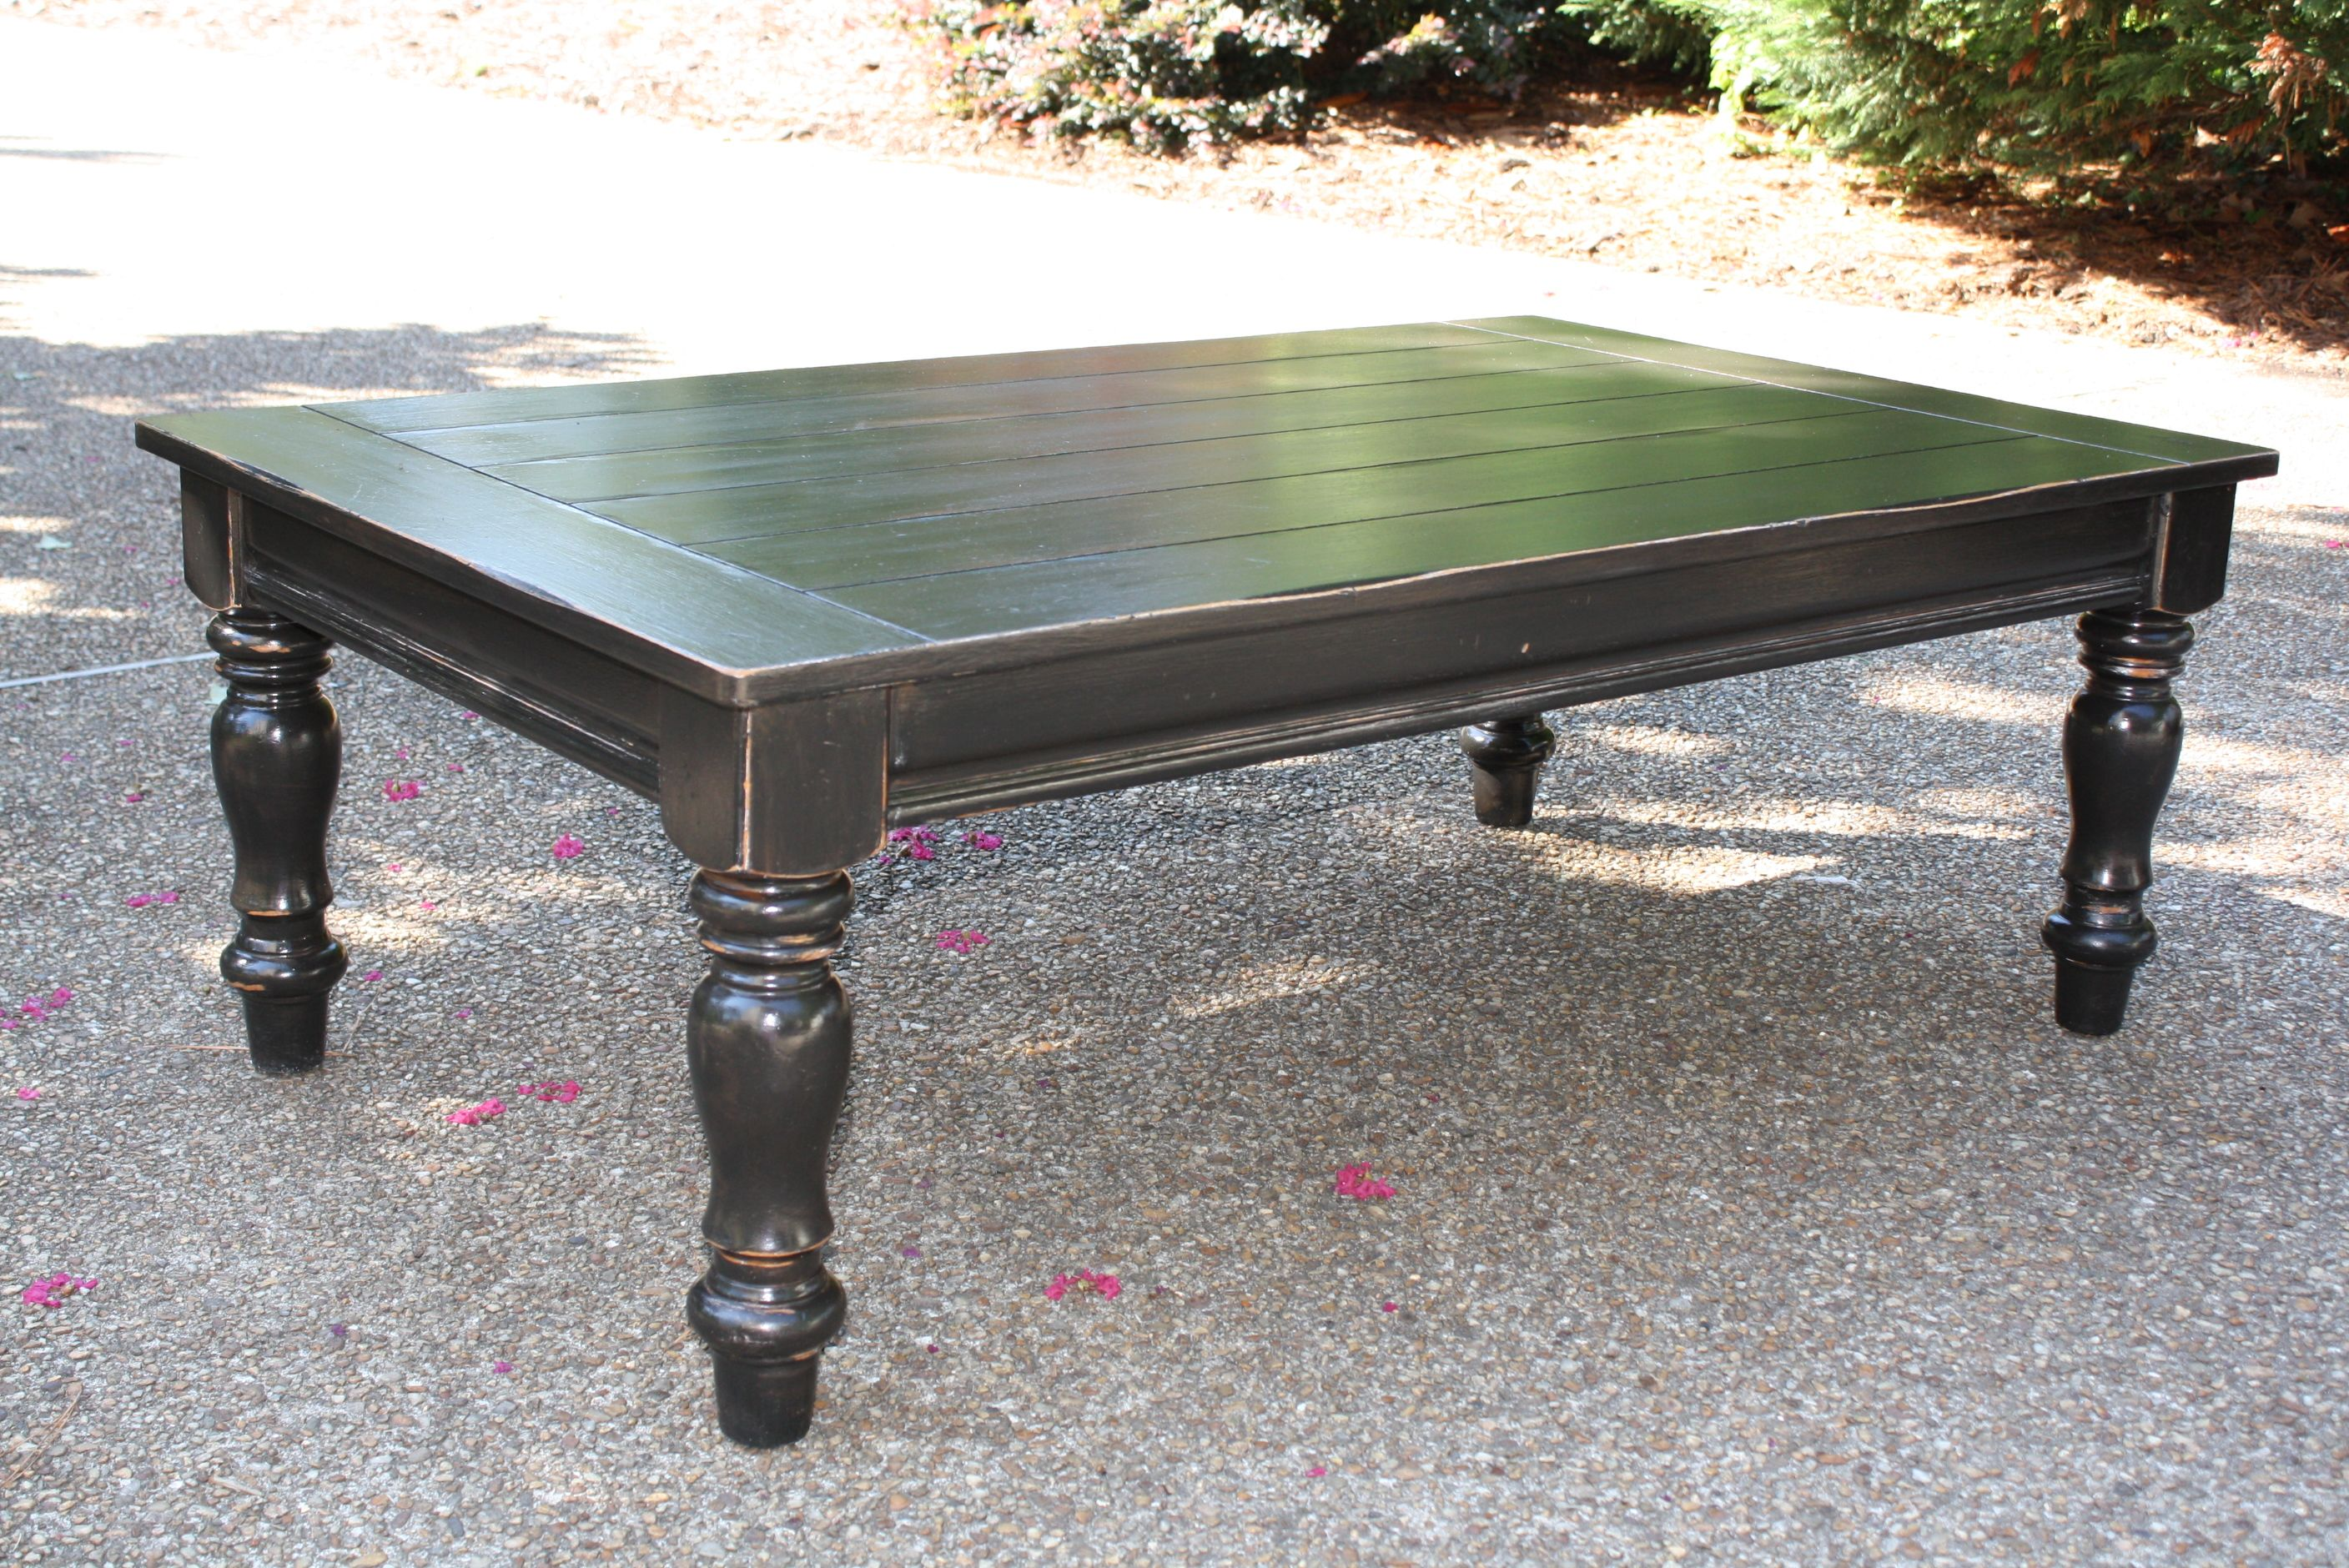 Chunky Black Coffee Table Black Coffee Tables Furniture Painted Furniture [ 1880 x 2816 Pixel ]